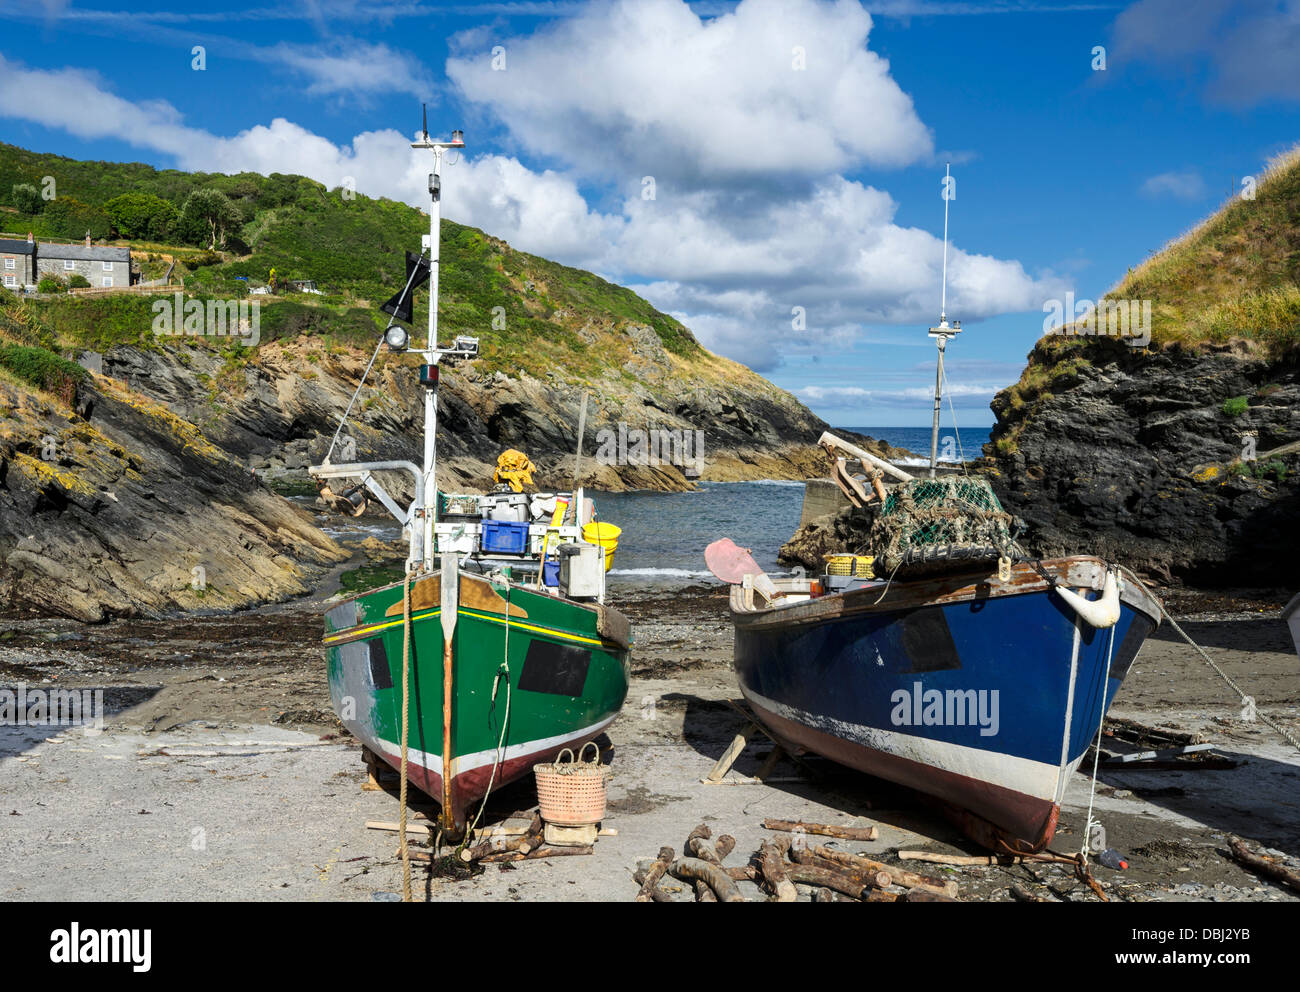 Colourful fishing boats on the beach at Portloe a small fishing village on the south coast of Cornwall - Stock Image